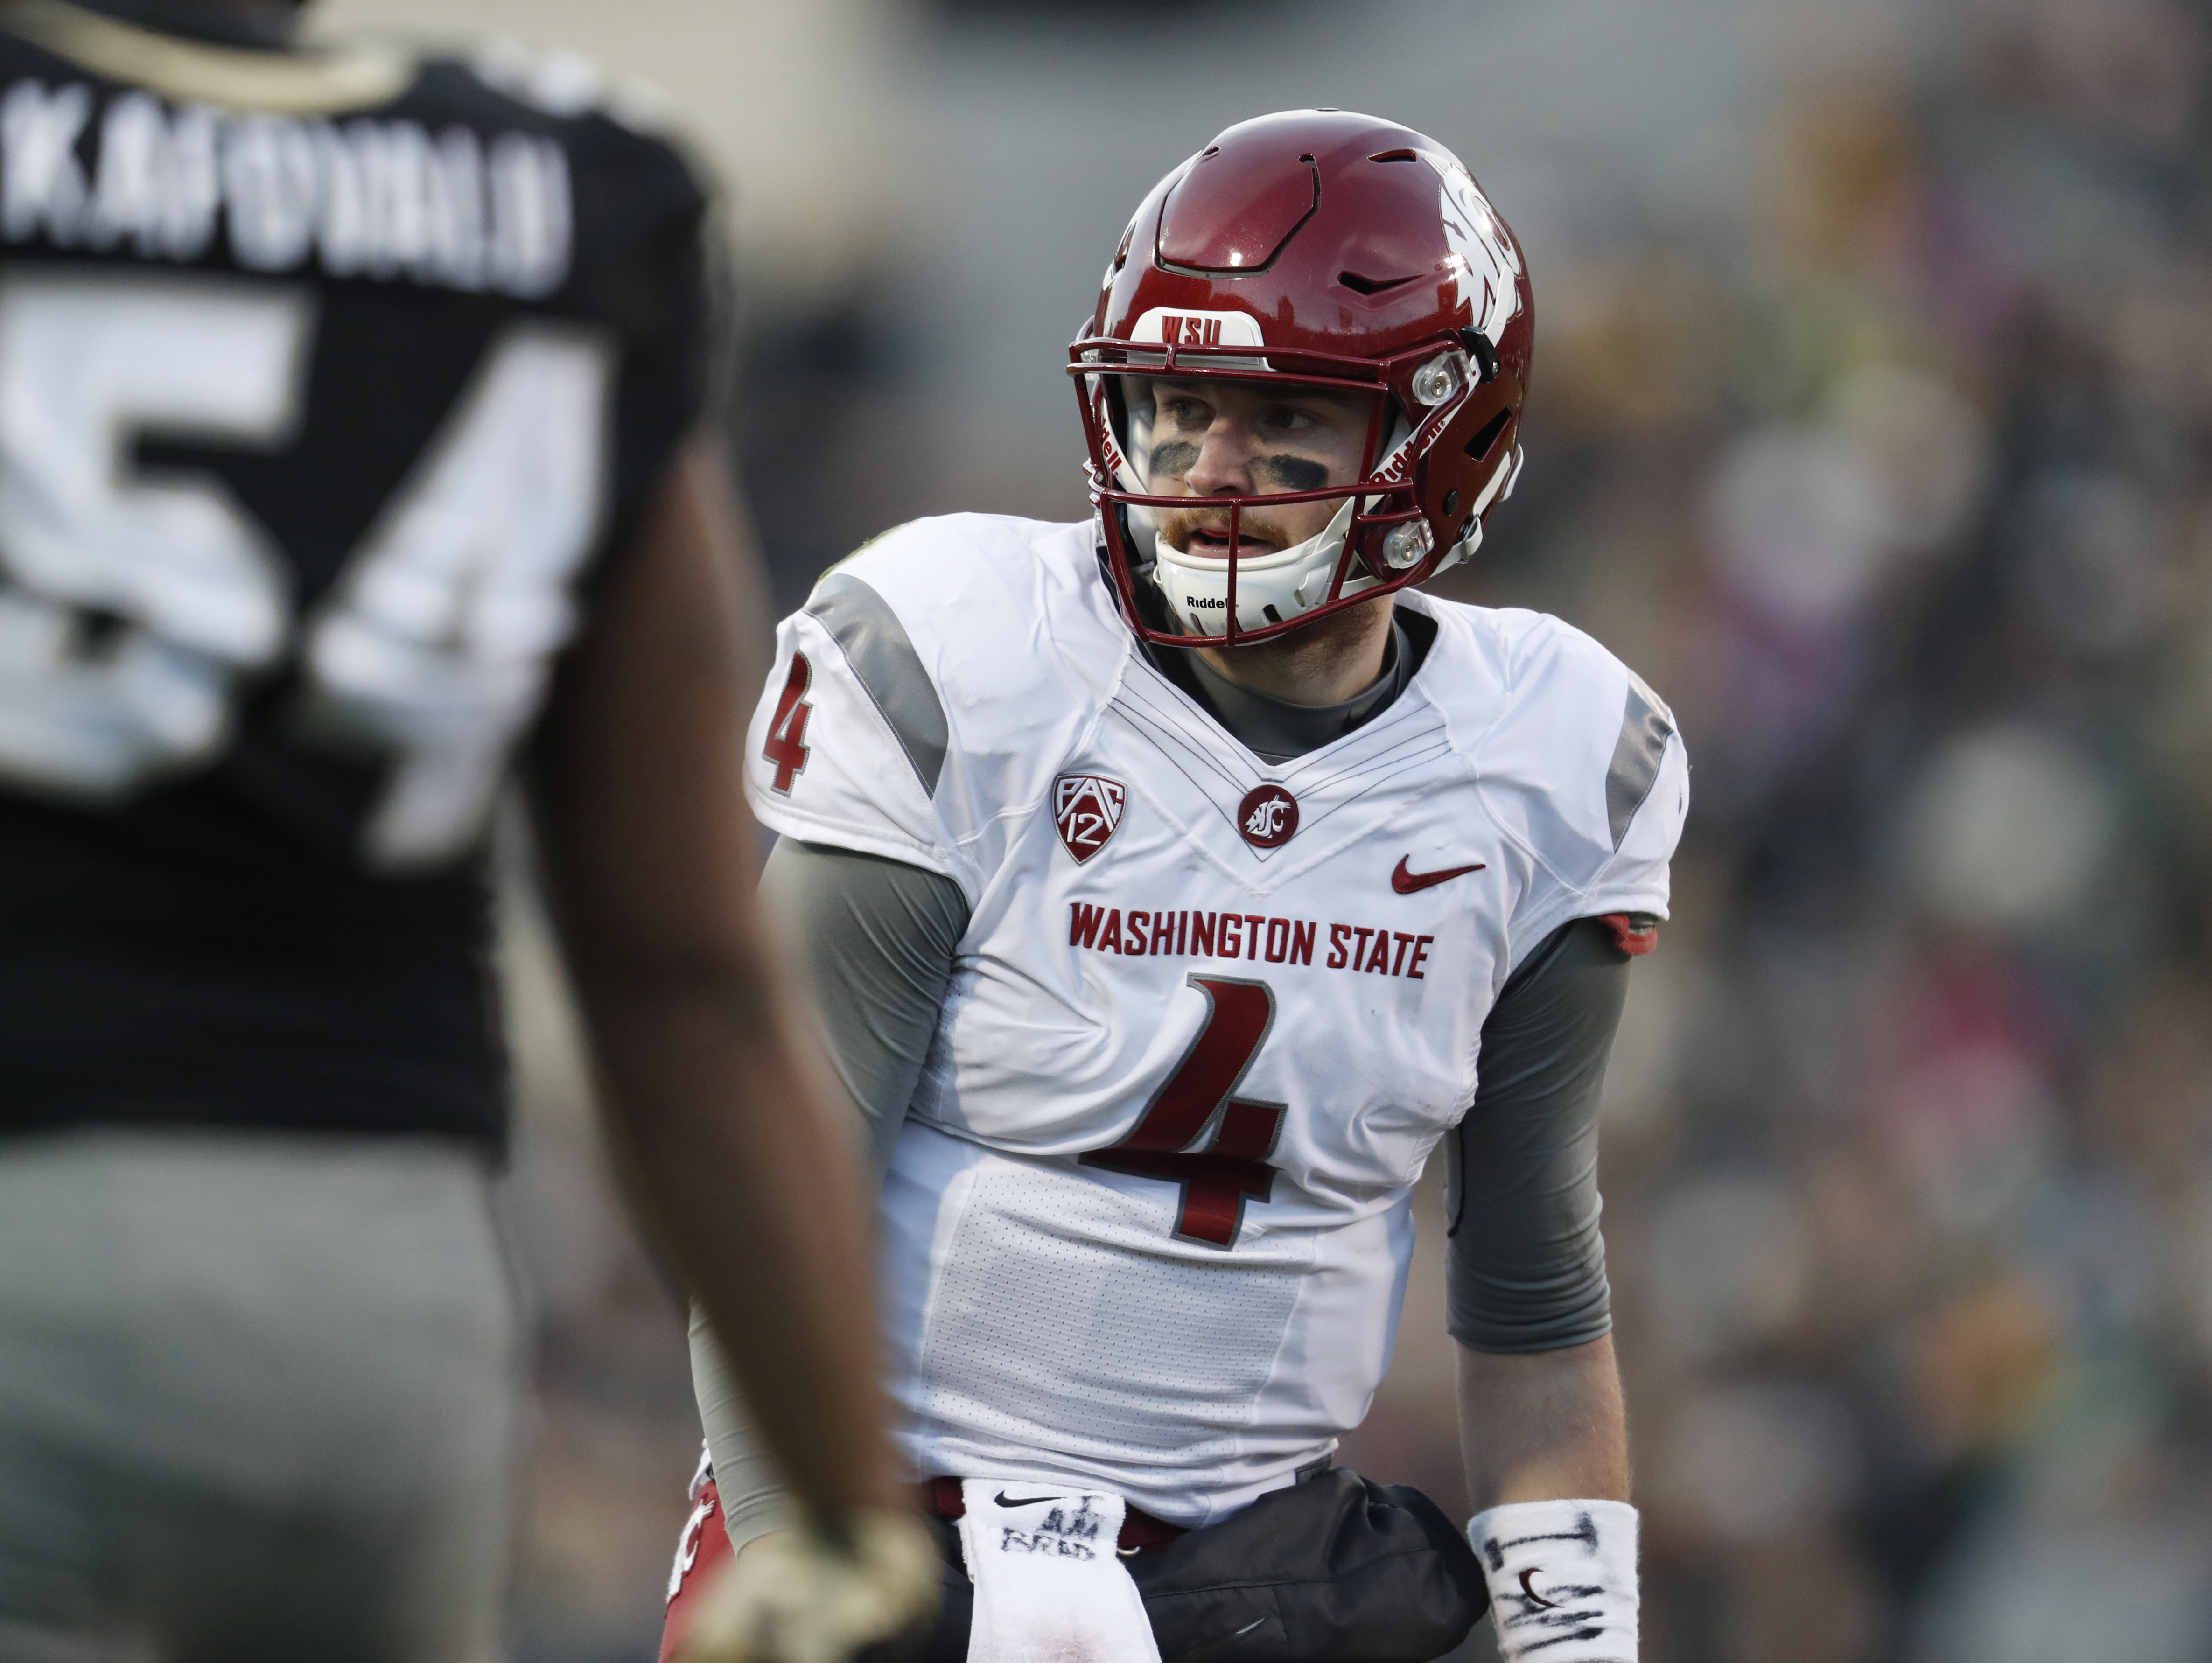 FILE - In this Nov. 19, 2016, file photo, Washington State quarterback Luke Falk (4) prepares for a play during the team's NCAA college football game against Colorado in Boulder, Colo. Washington State play Washington this week. The Apple Cup could also b